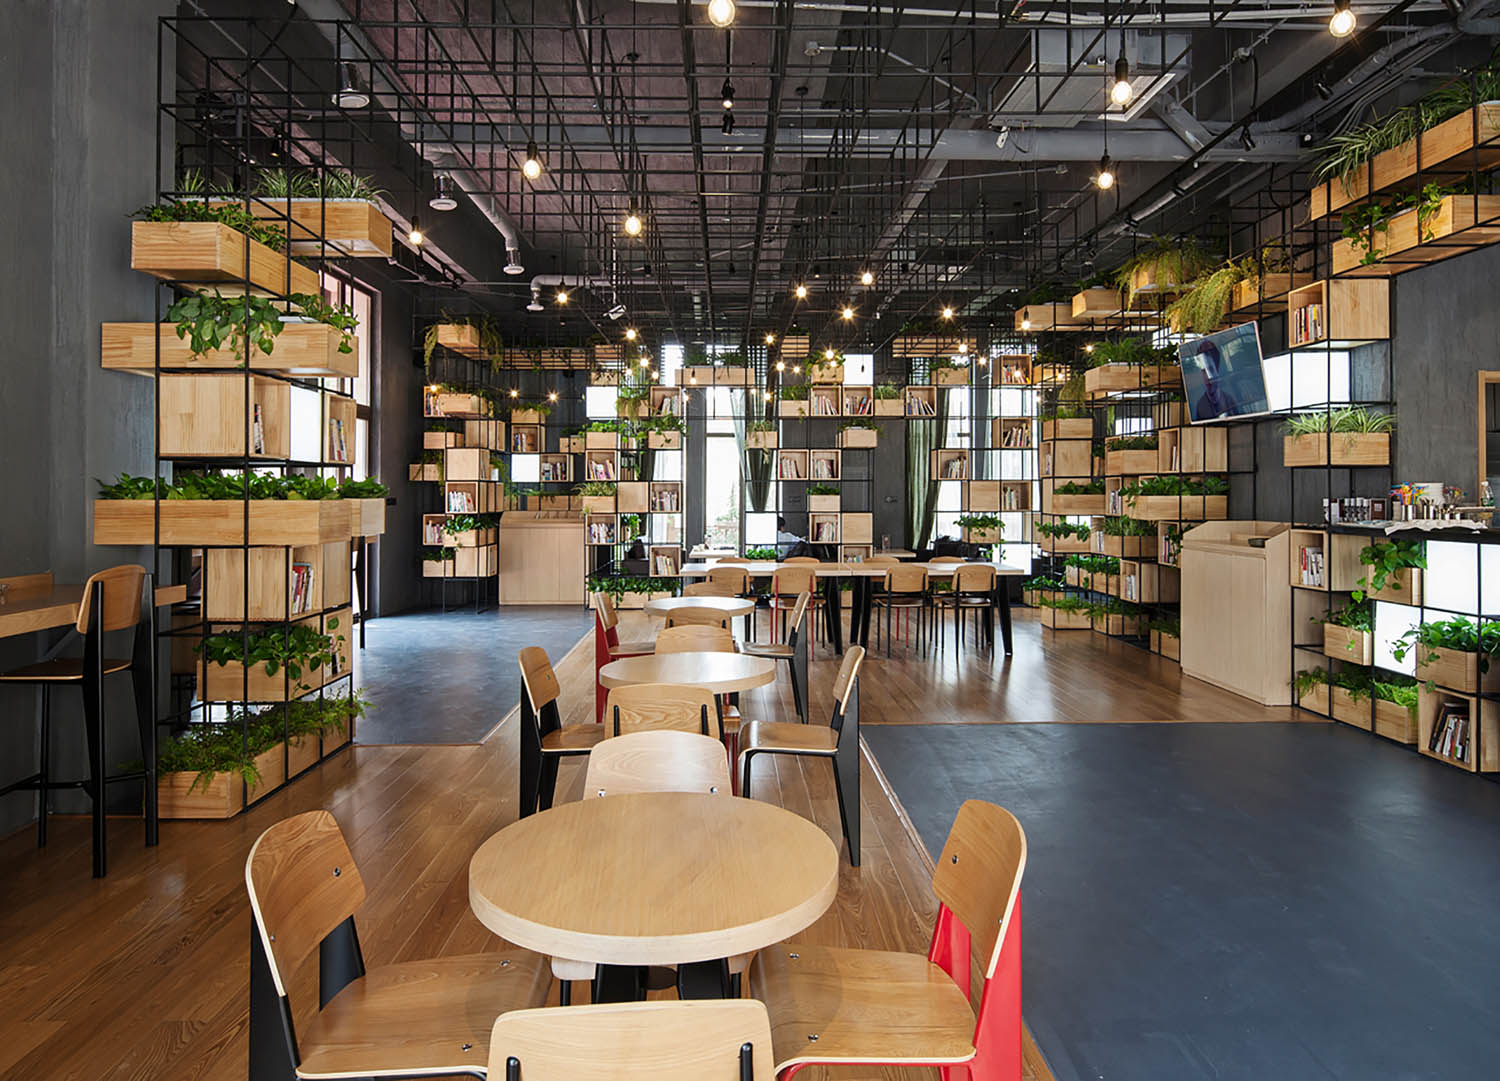 mm_Home Cafes fesign by Penda_03